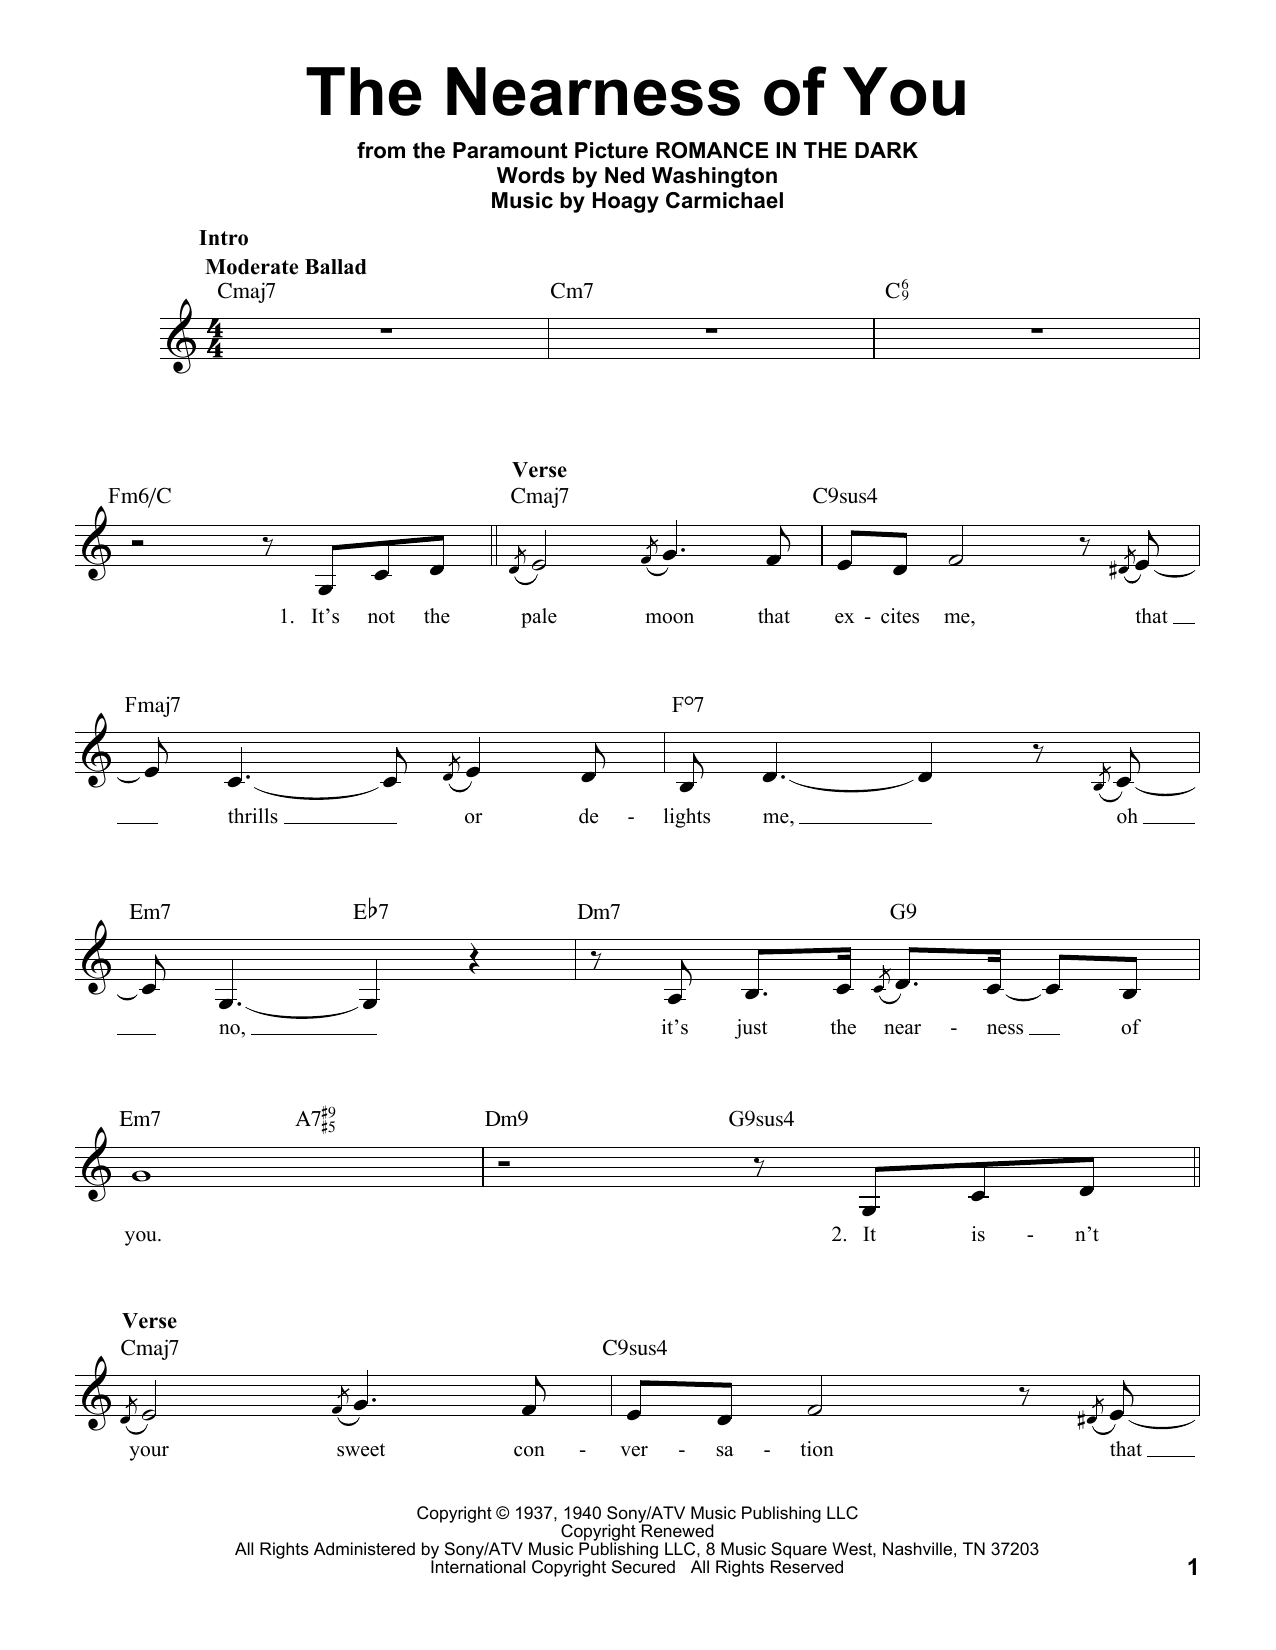 The nearness of you guitar chords gallery guitar chords examples sheet music digital files to print licensed hoagy carmichael the nearness of you fatherlandz gallery hexwebz Gallery